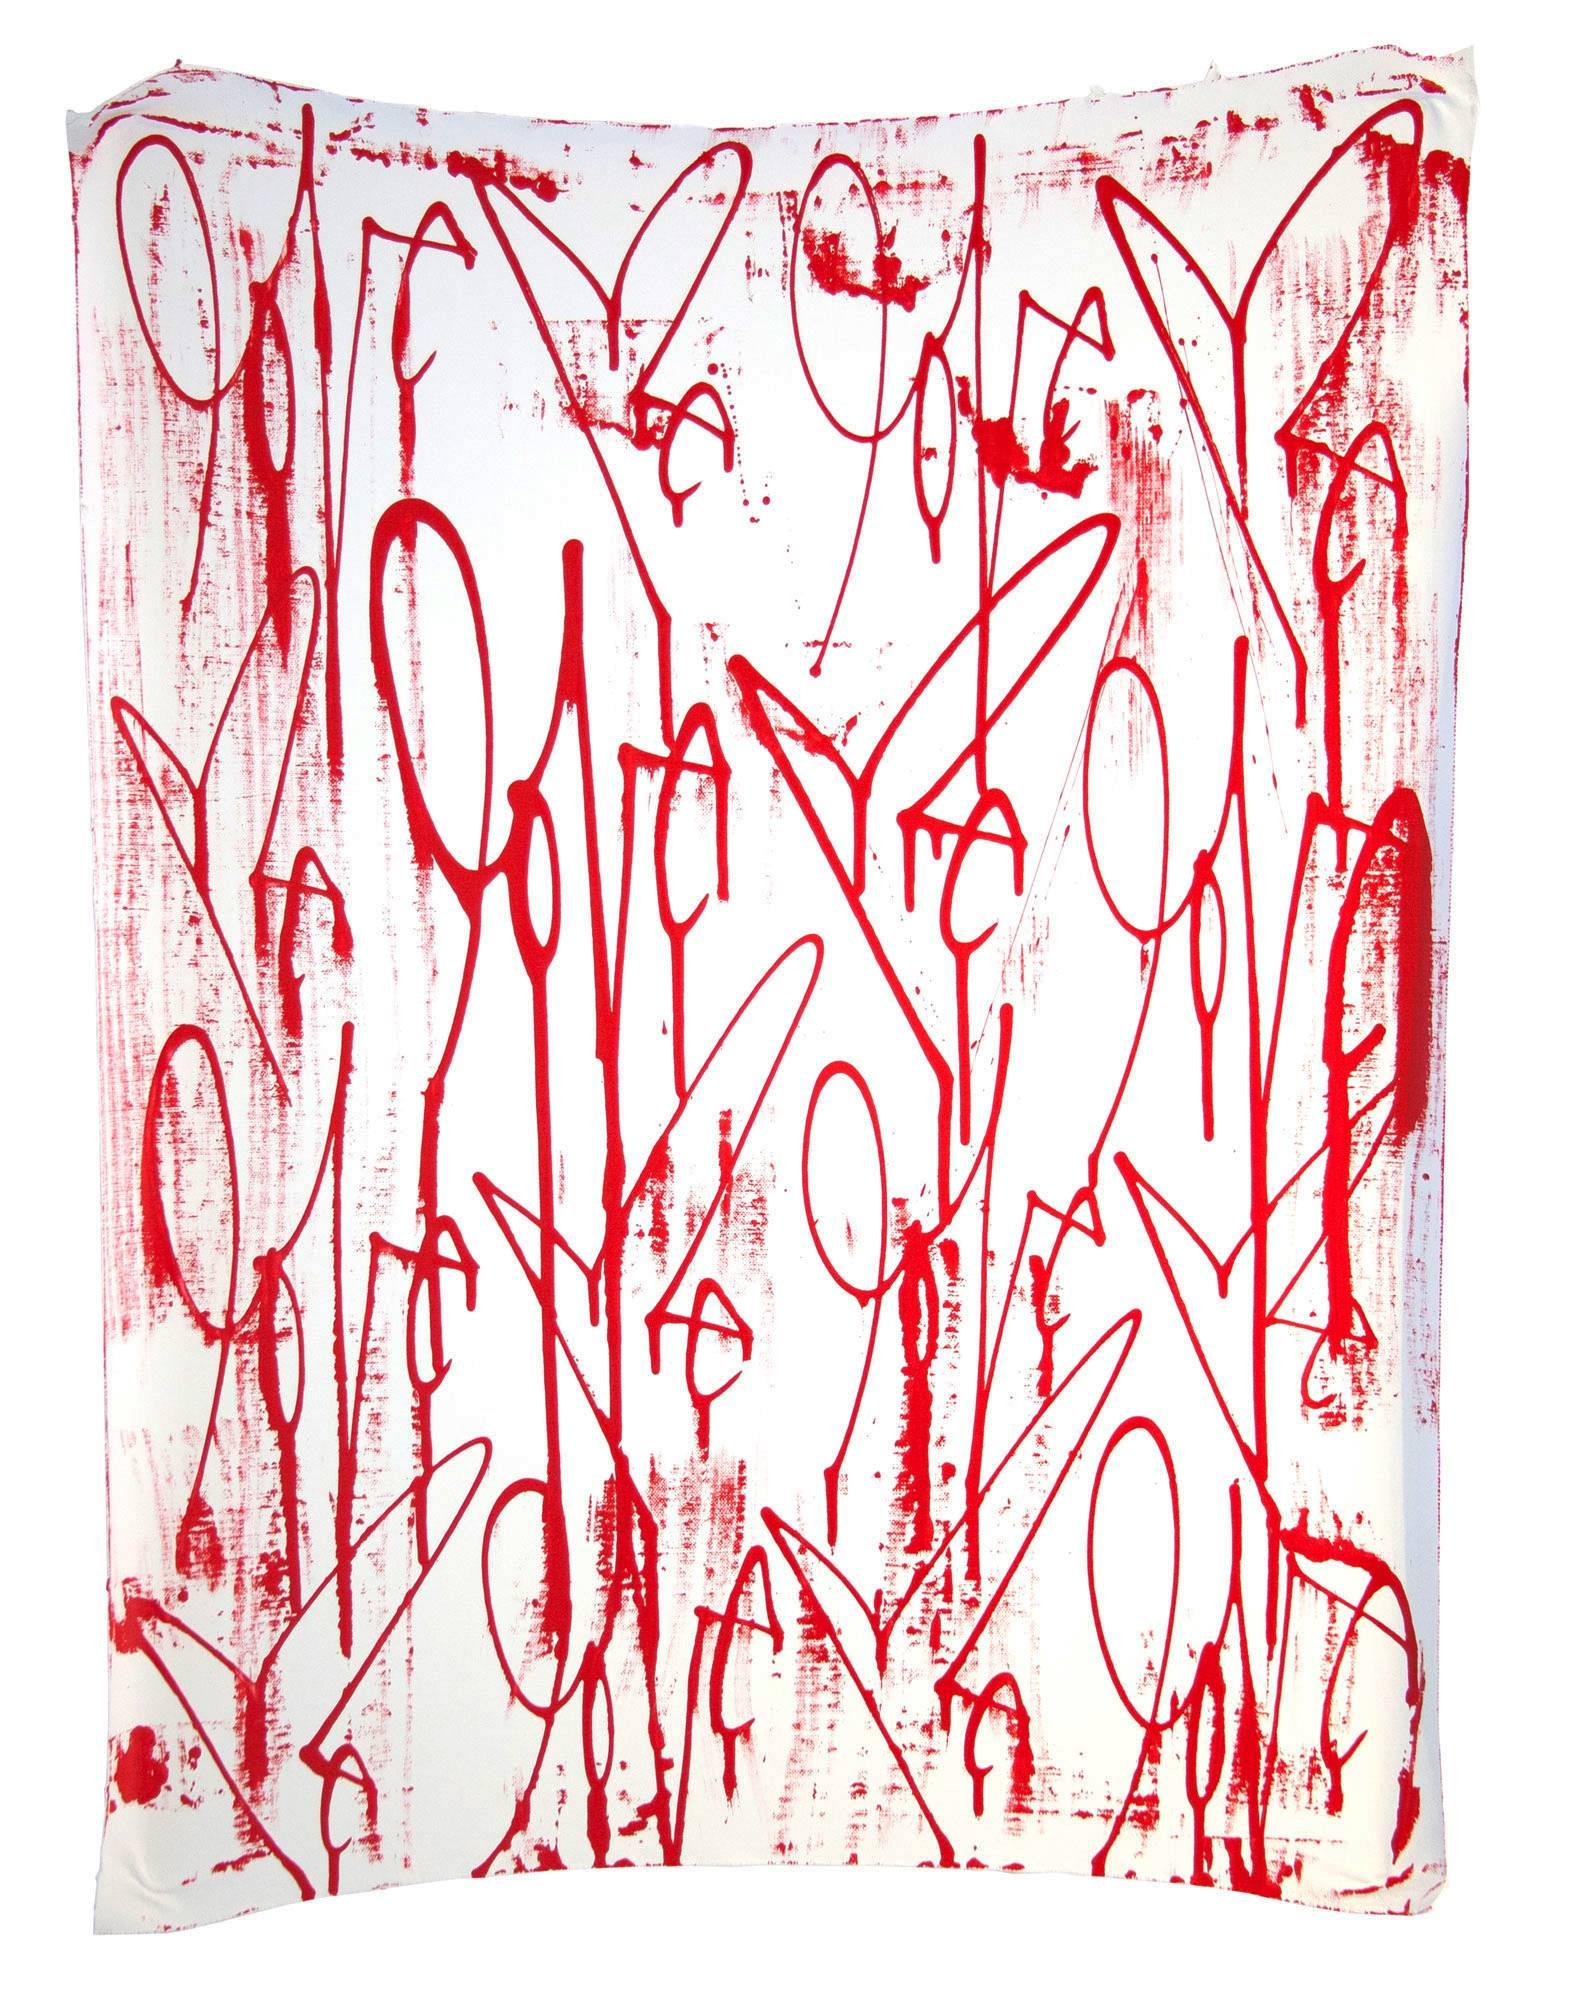 Love Me Oil on Linen Canvas (red and white paintings)